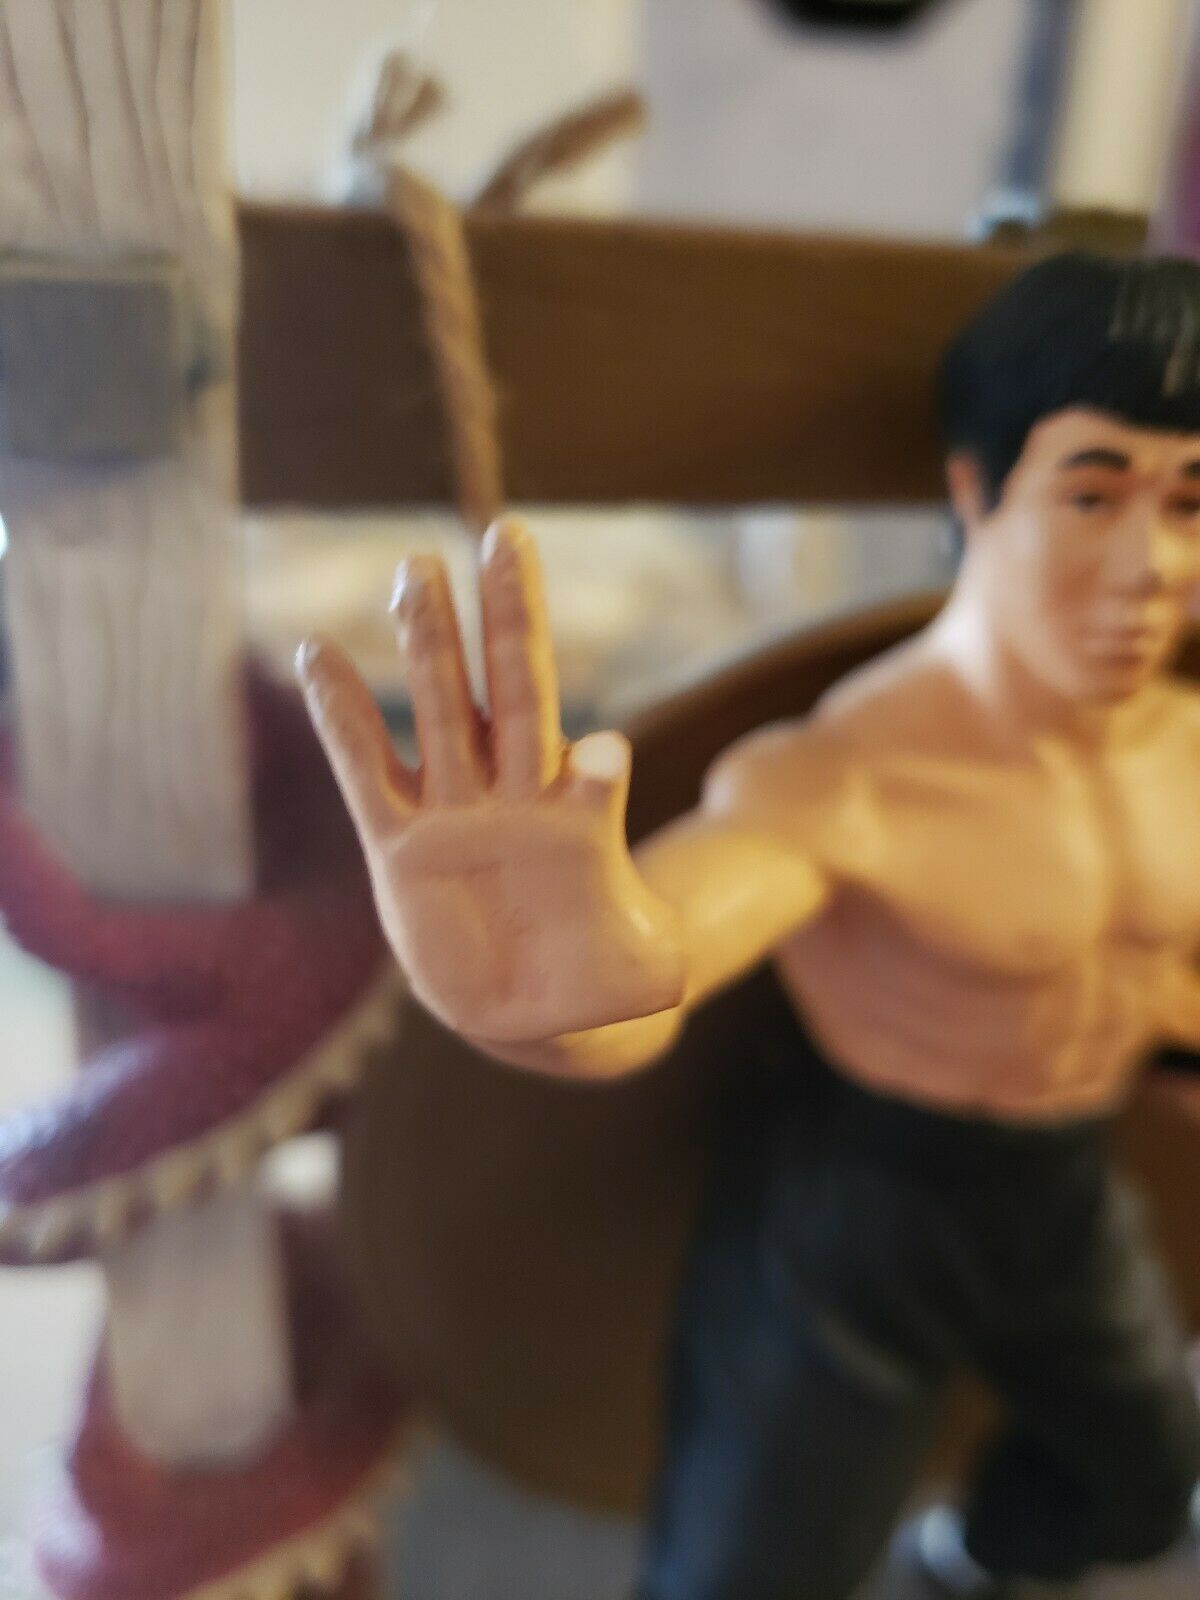 Bruce Lee Diorama Statue 161 Of 4000 9x12 9x12 9x12 654e23